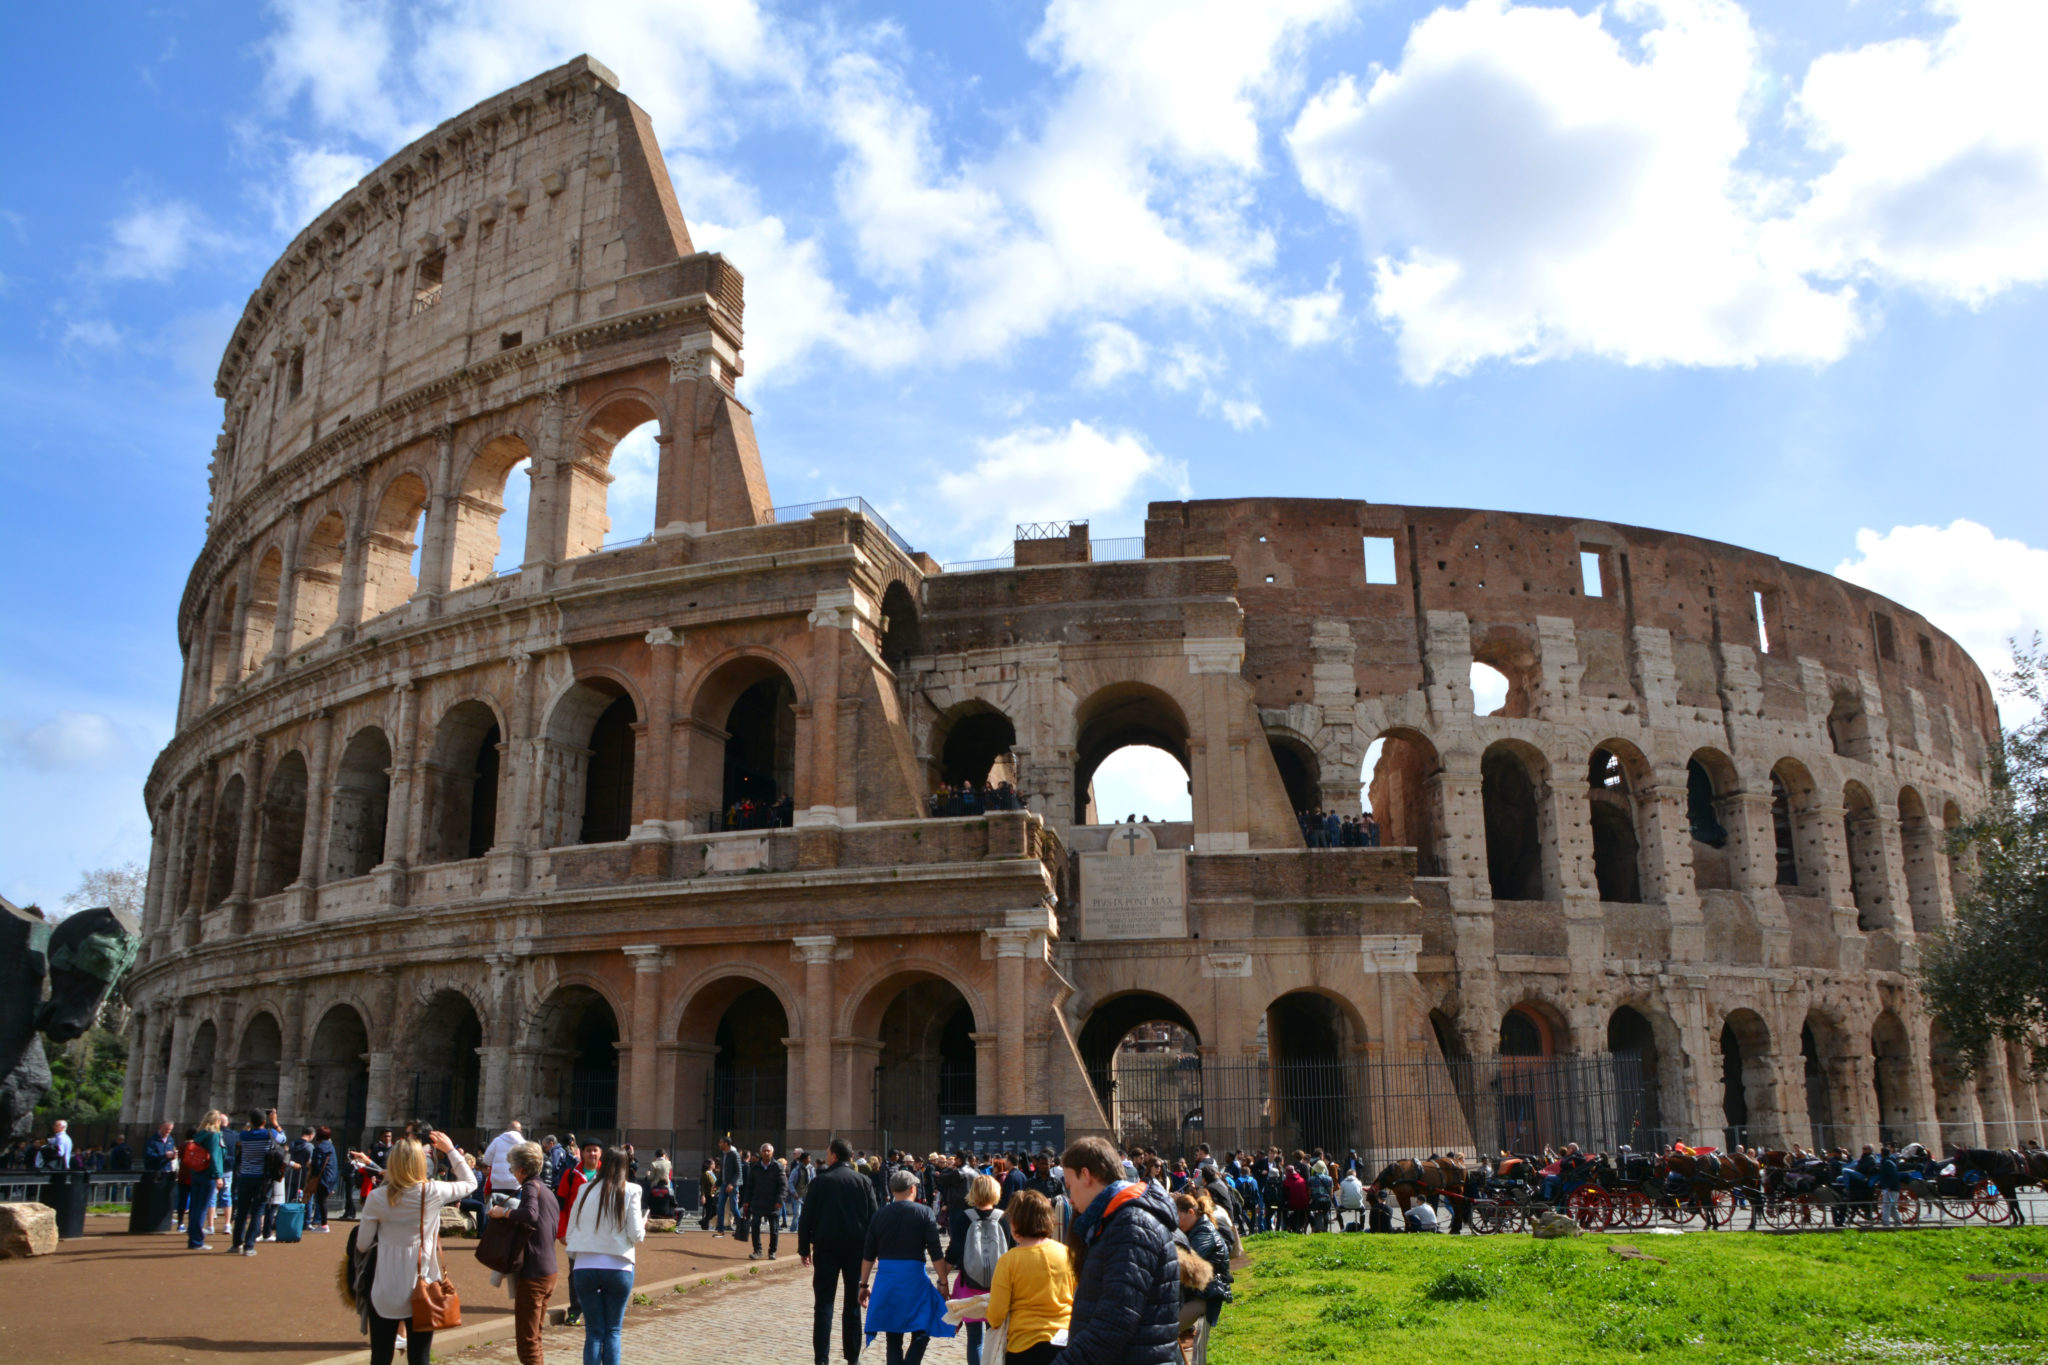 1 Day in Rome Itinerary